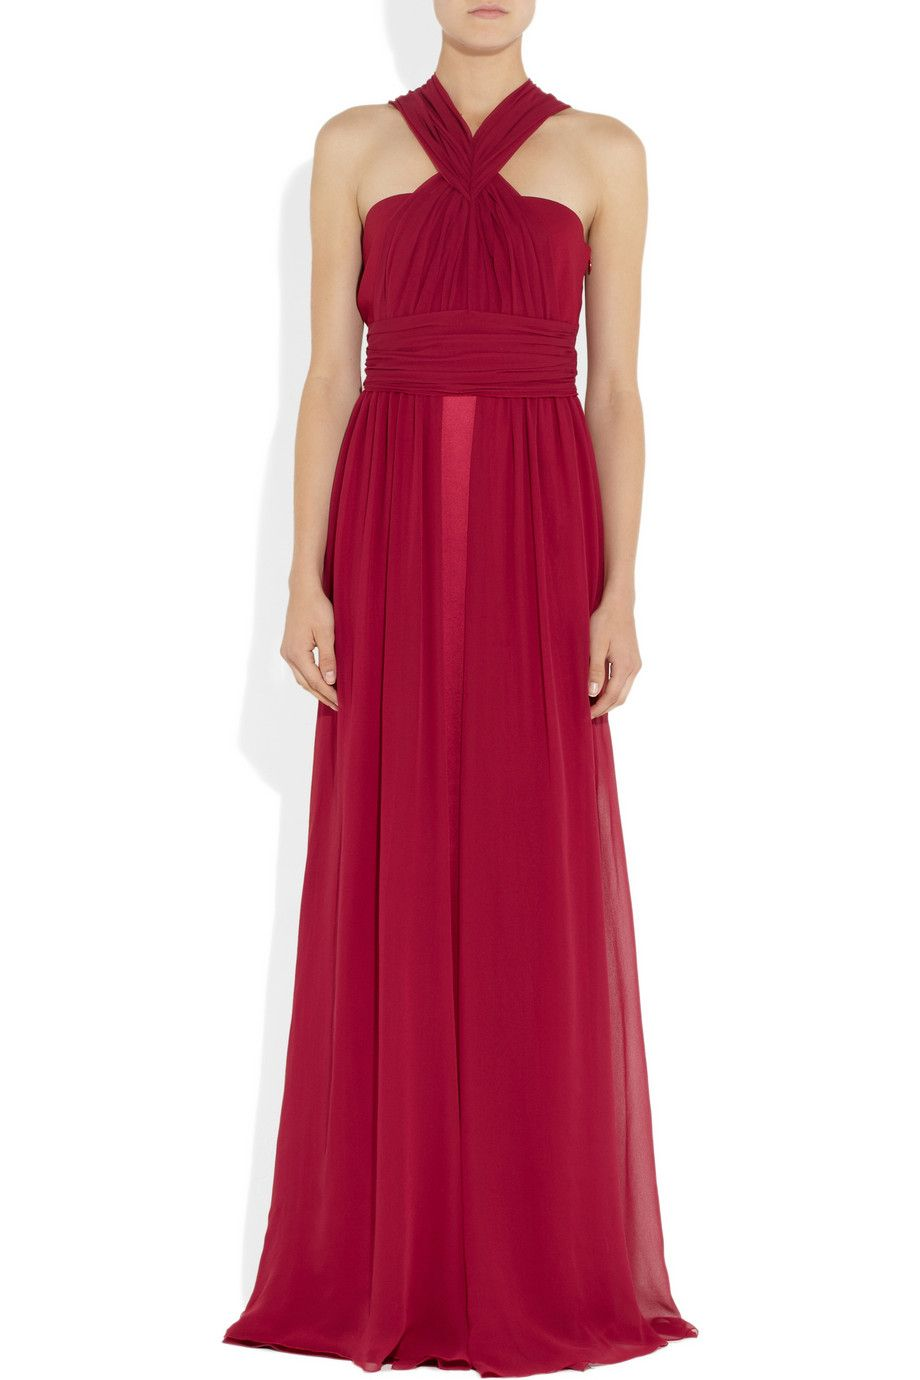 Vionnet silkchiffon and satin gown netaporter on the body